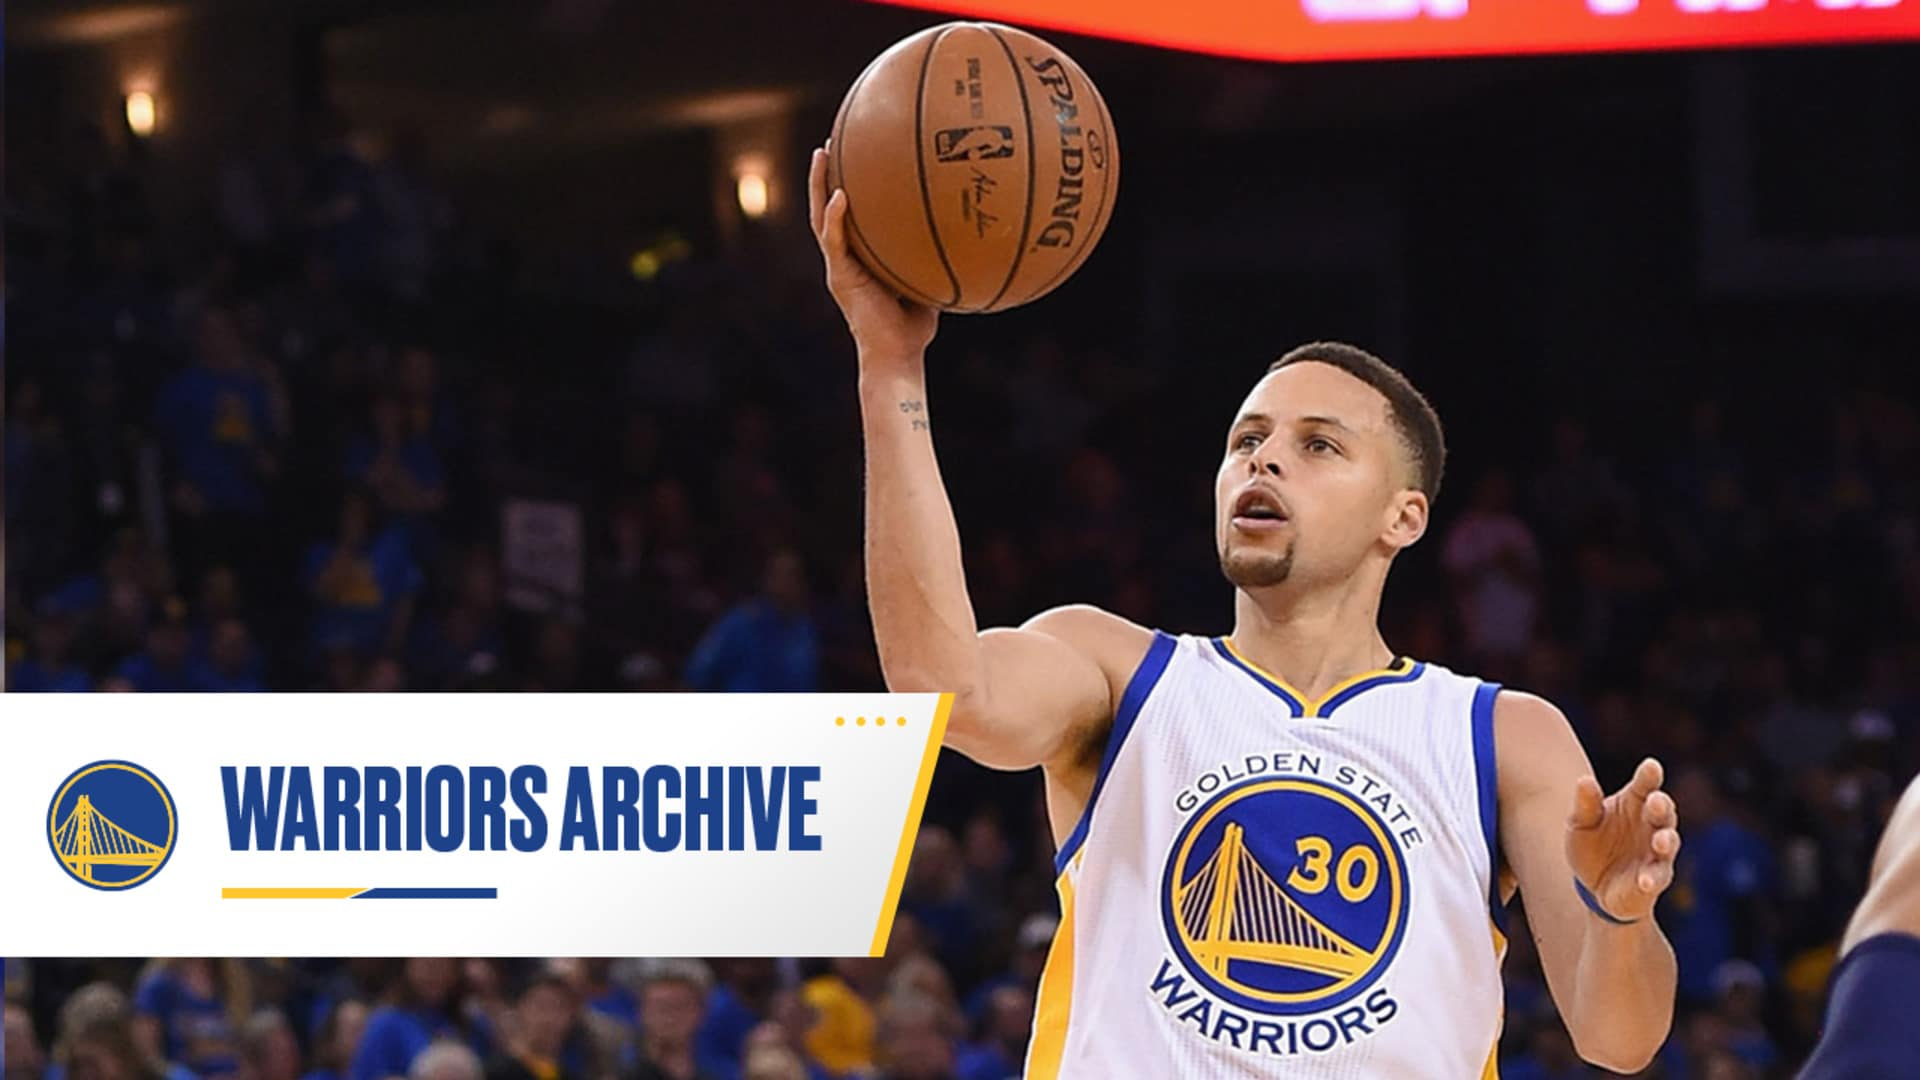 Warriors Make NBA History with 73rd Win of the 2015-16 Season